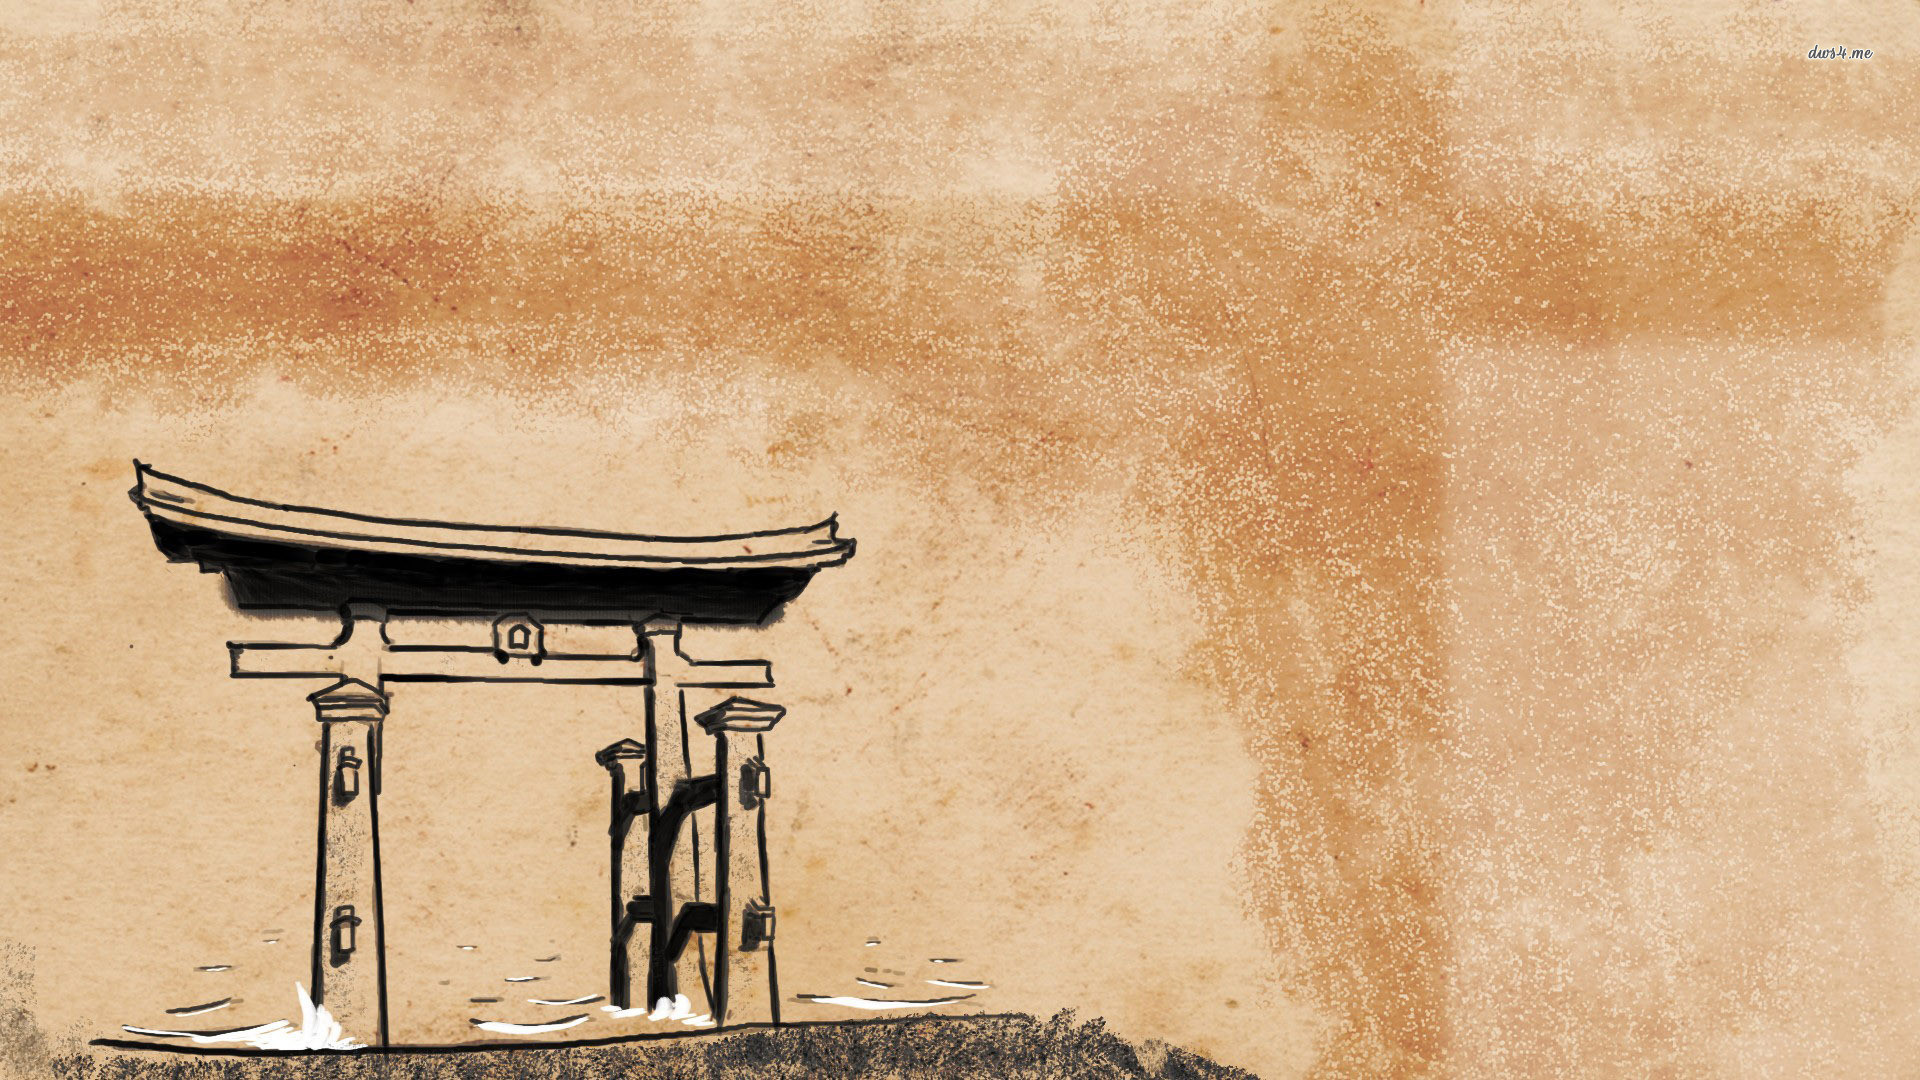 Res: 1920x1080, 2 Japanese Art HD Wallpapers   Backgrounds - Wallpaper Abyss